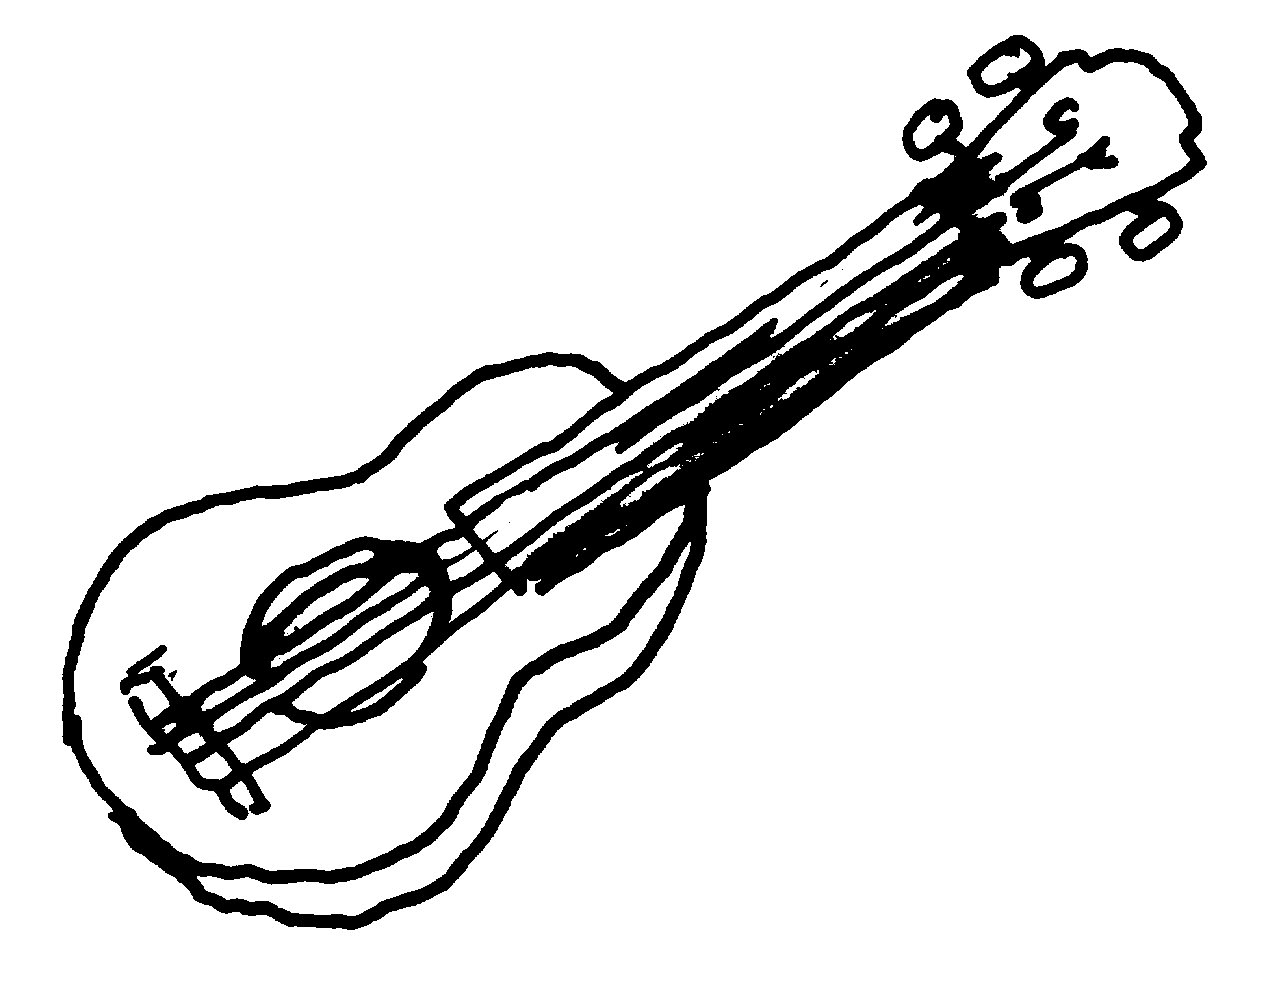 And white images wikiclipart. Clipart guitar clip art black